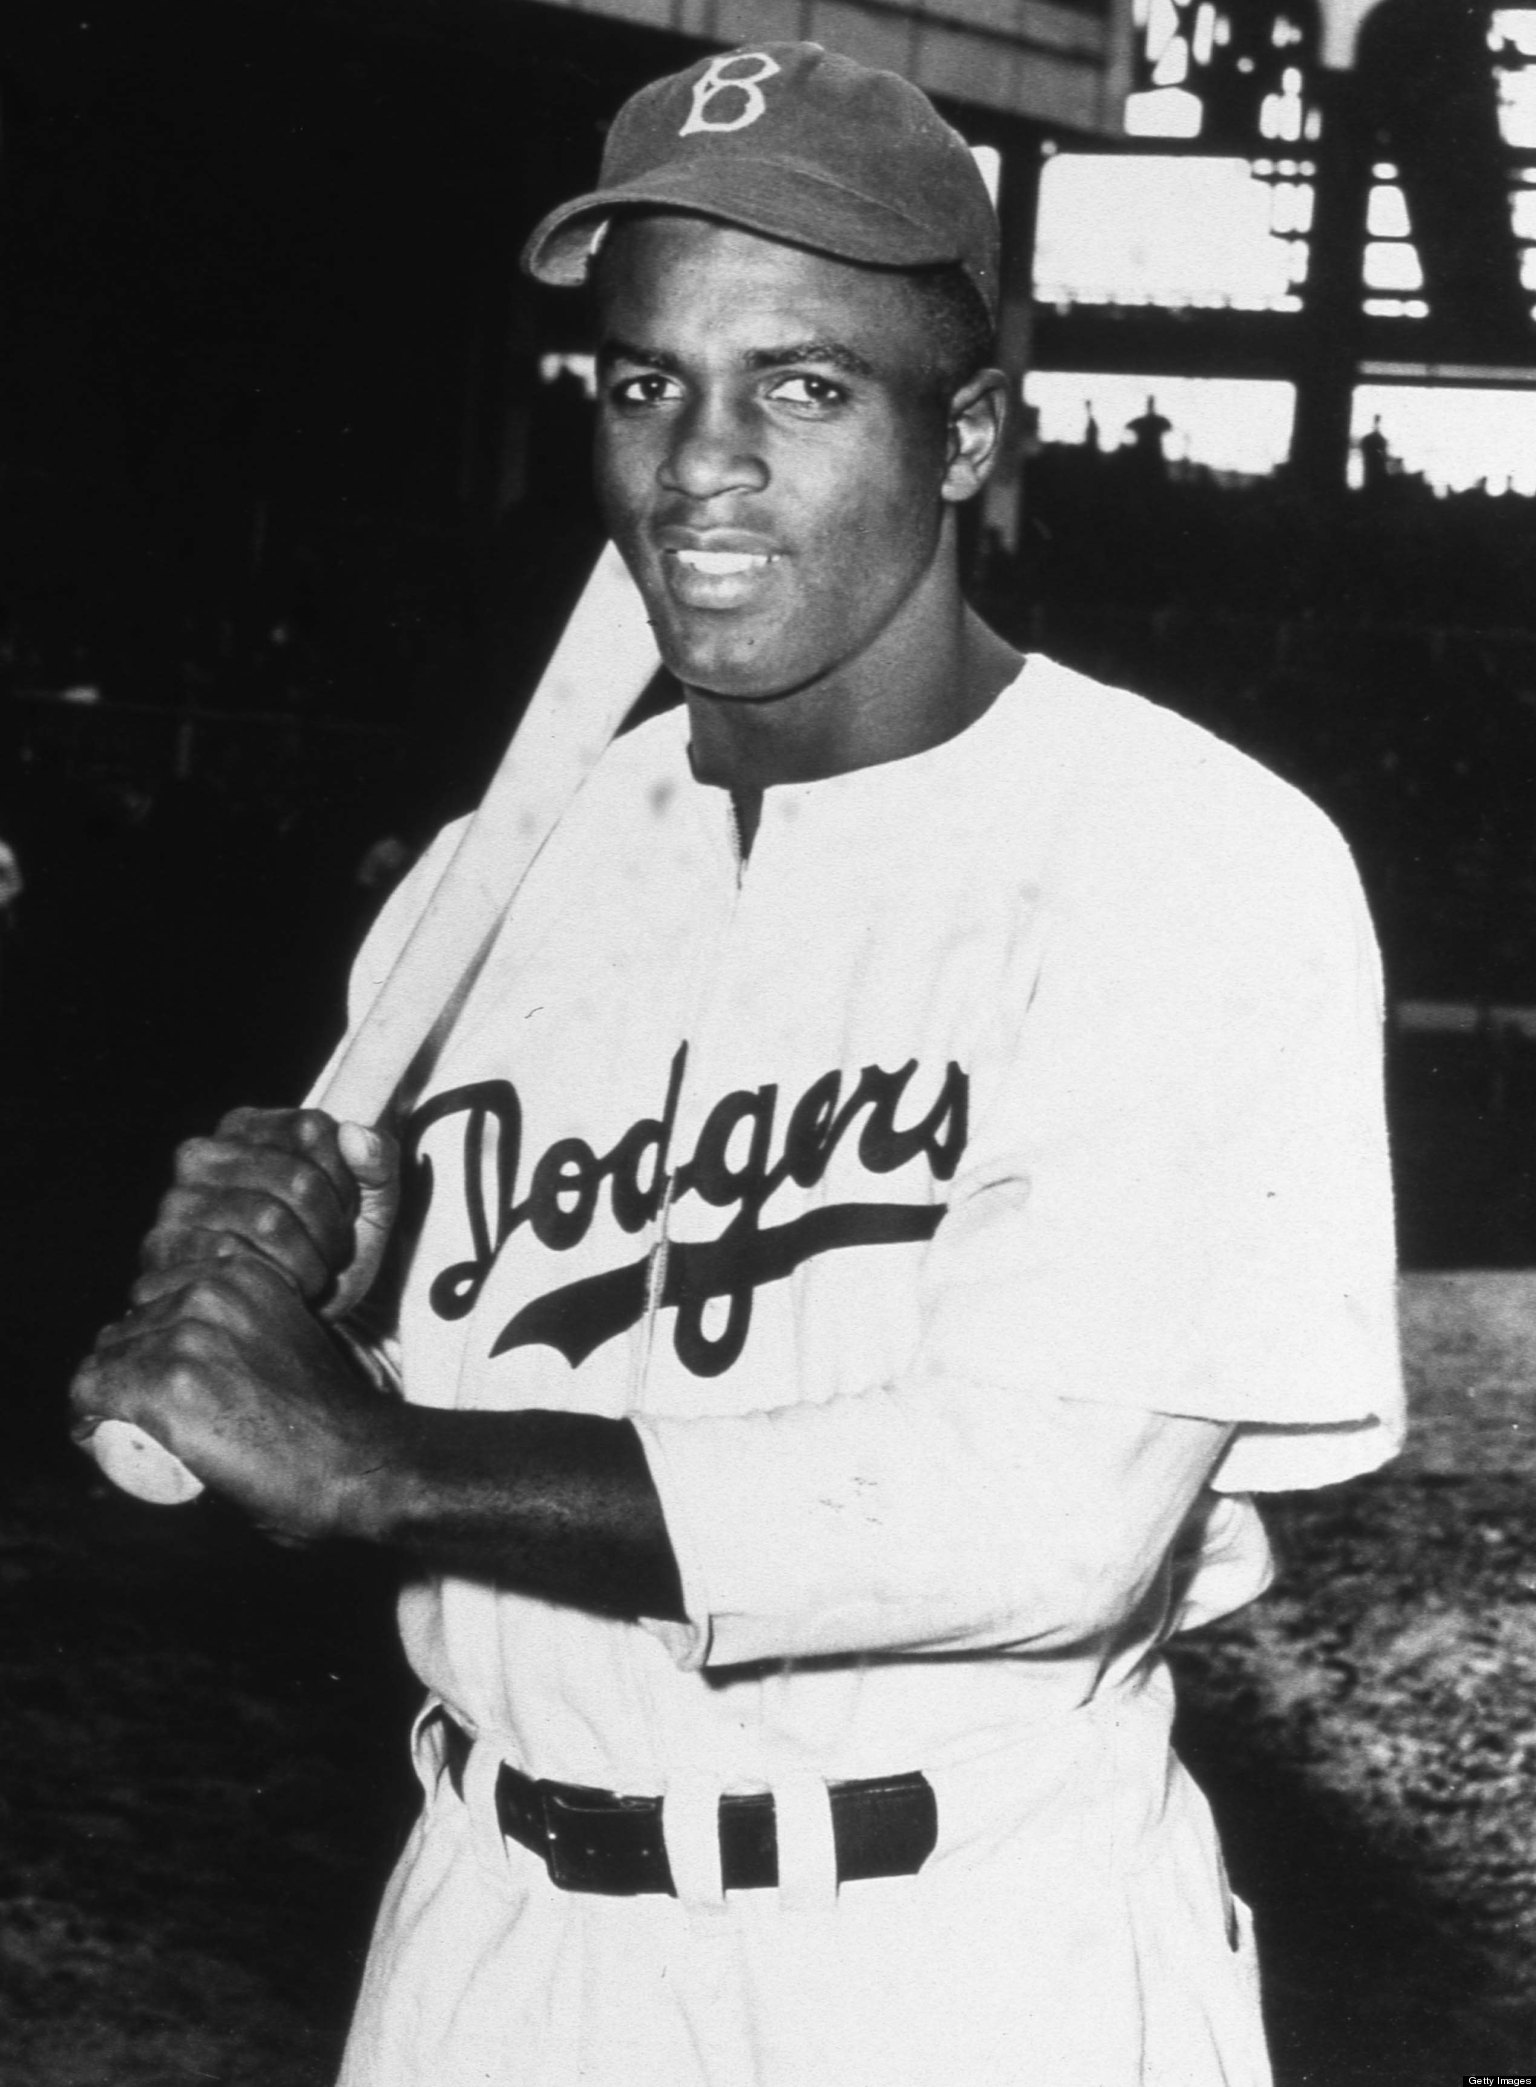 jackie robinsons significance essays Teaching guide 2017 breaking barriers essay and how jackie robinson faced and overcame barriers have students prepare to write essays about their own.